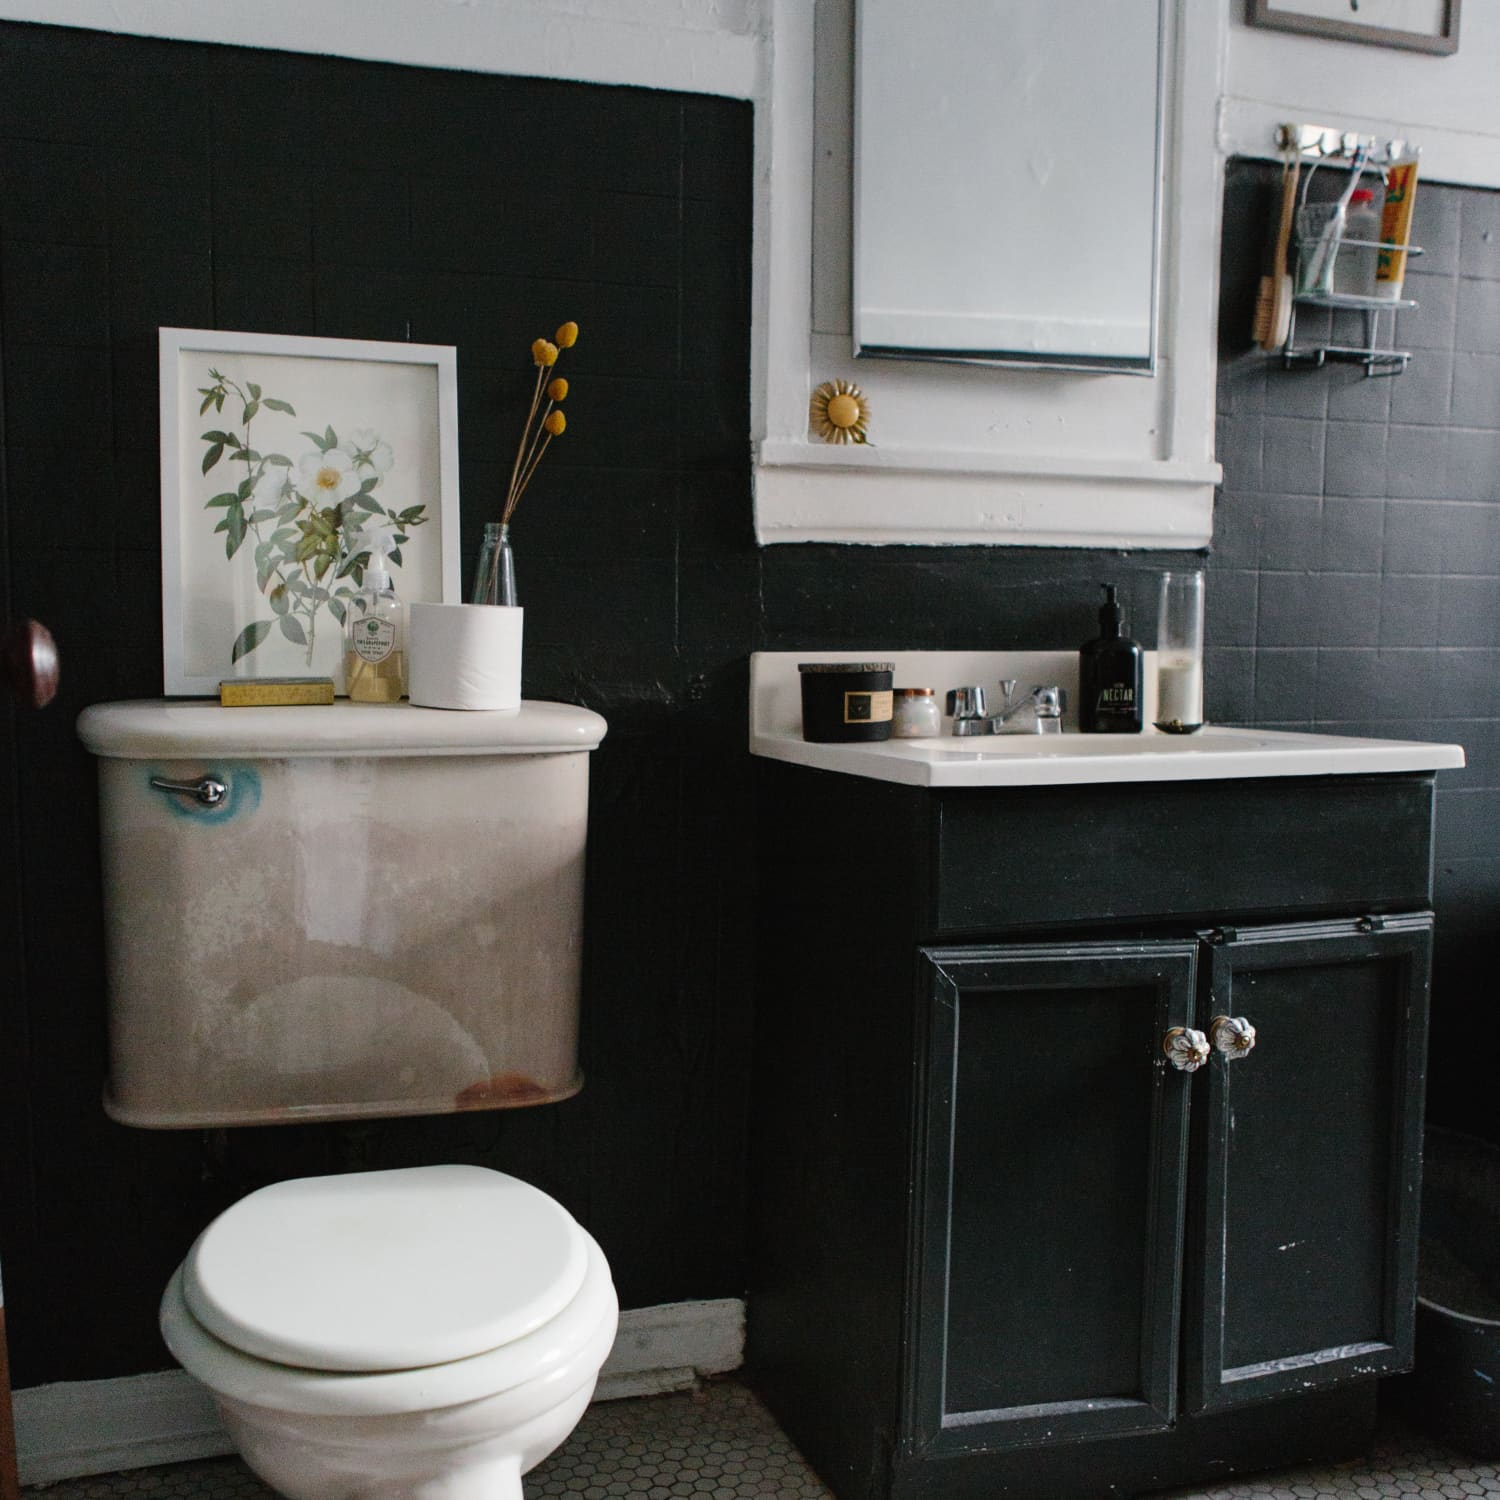 20 Reversible Ideas To Overhaul Your Rental Bathroom Now Apartment Therapy